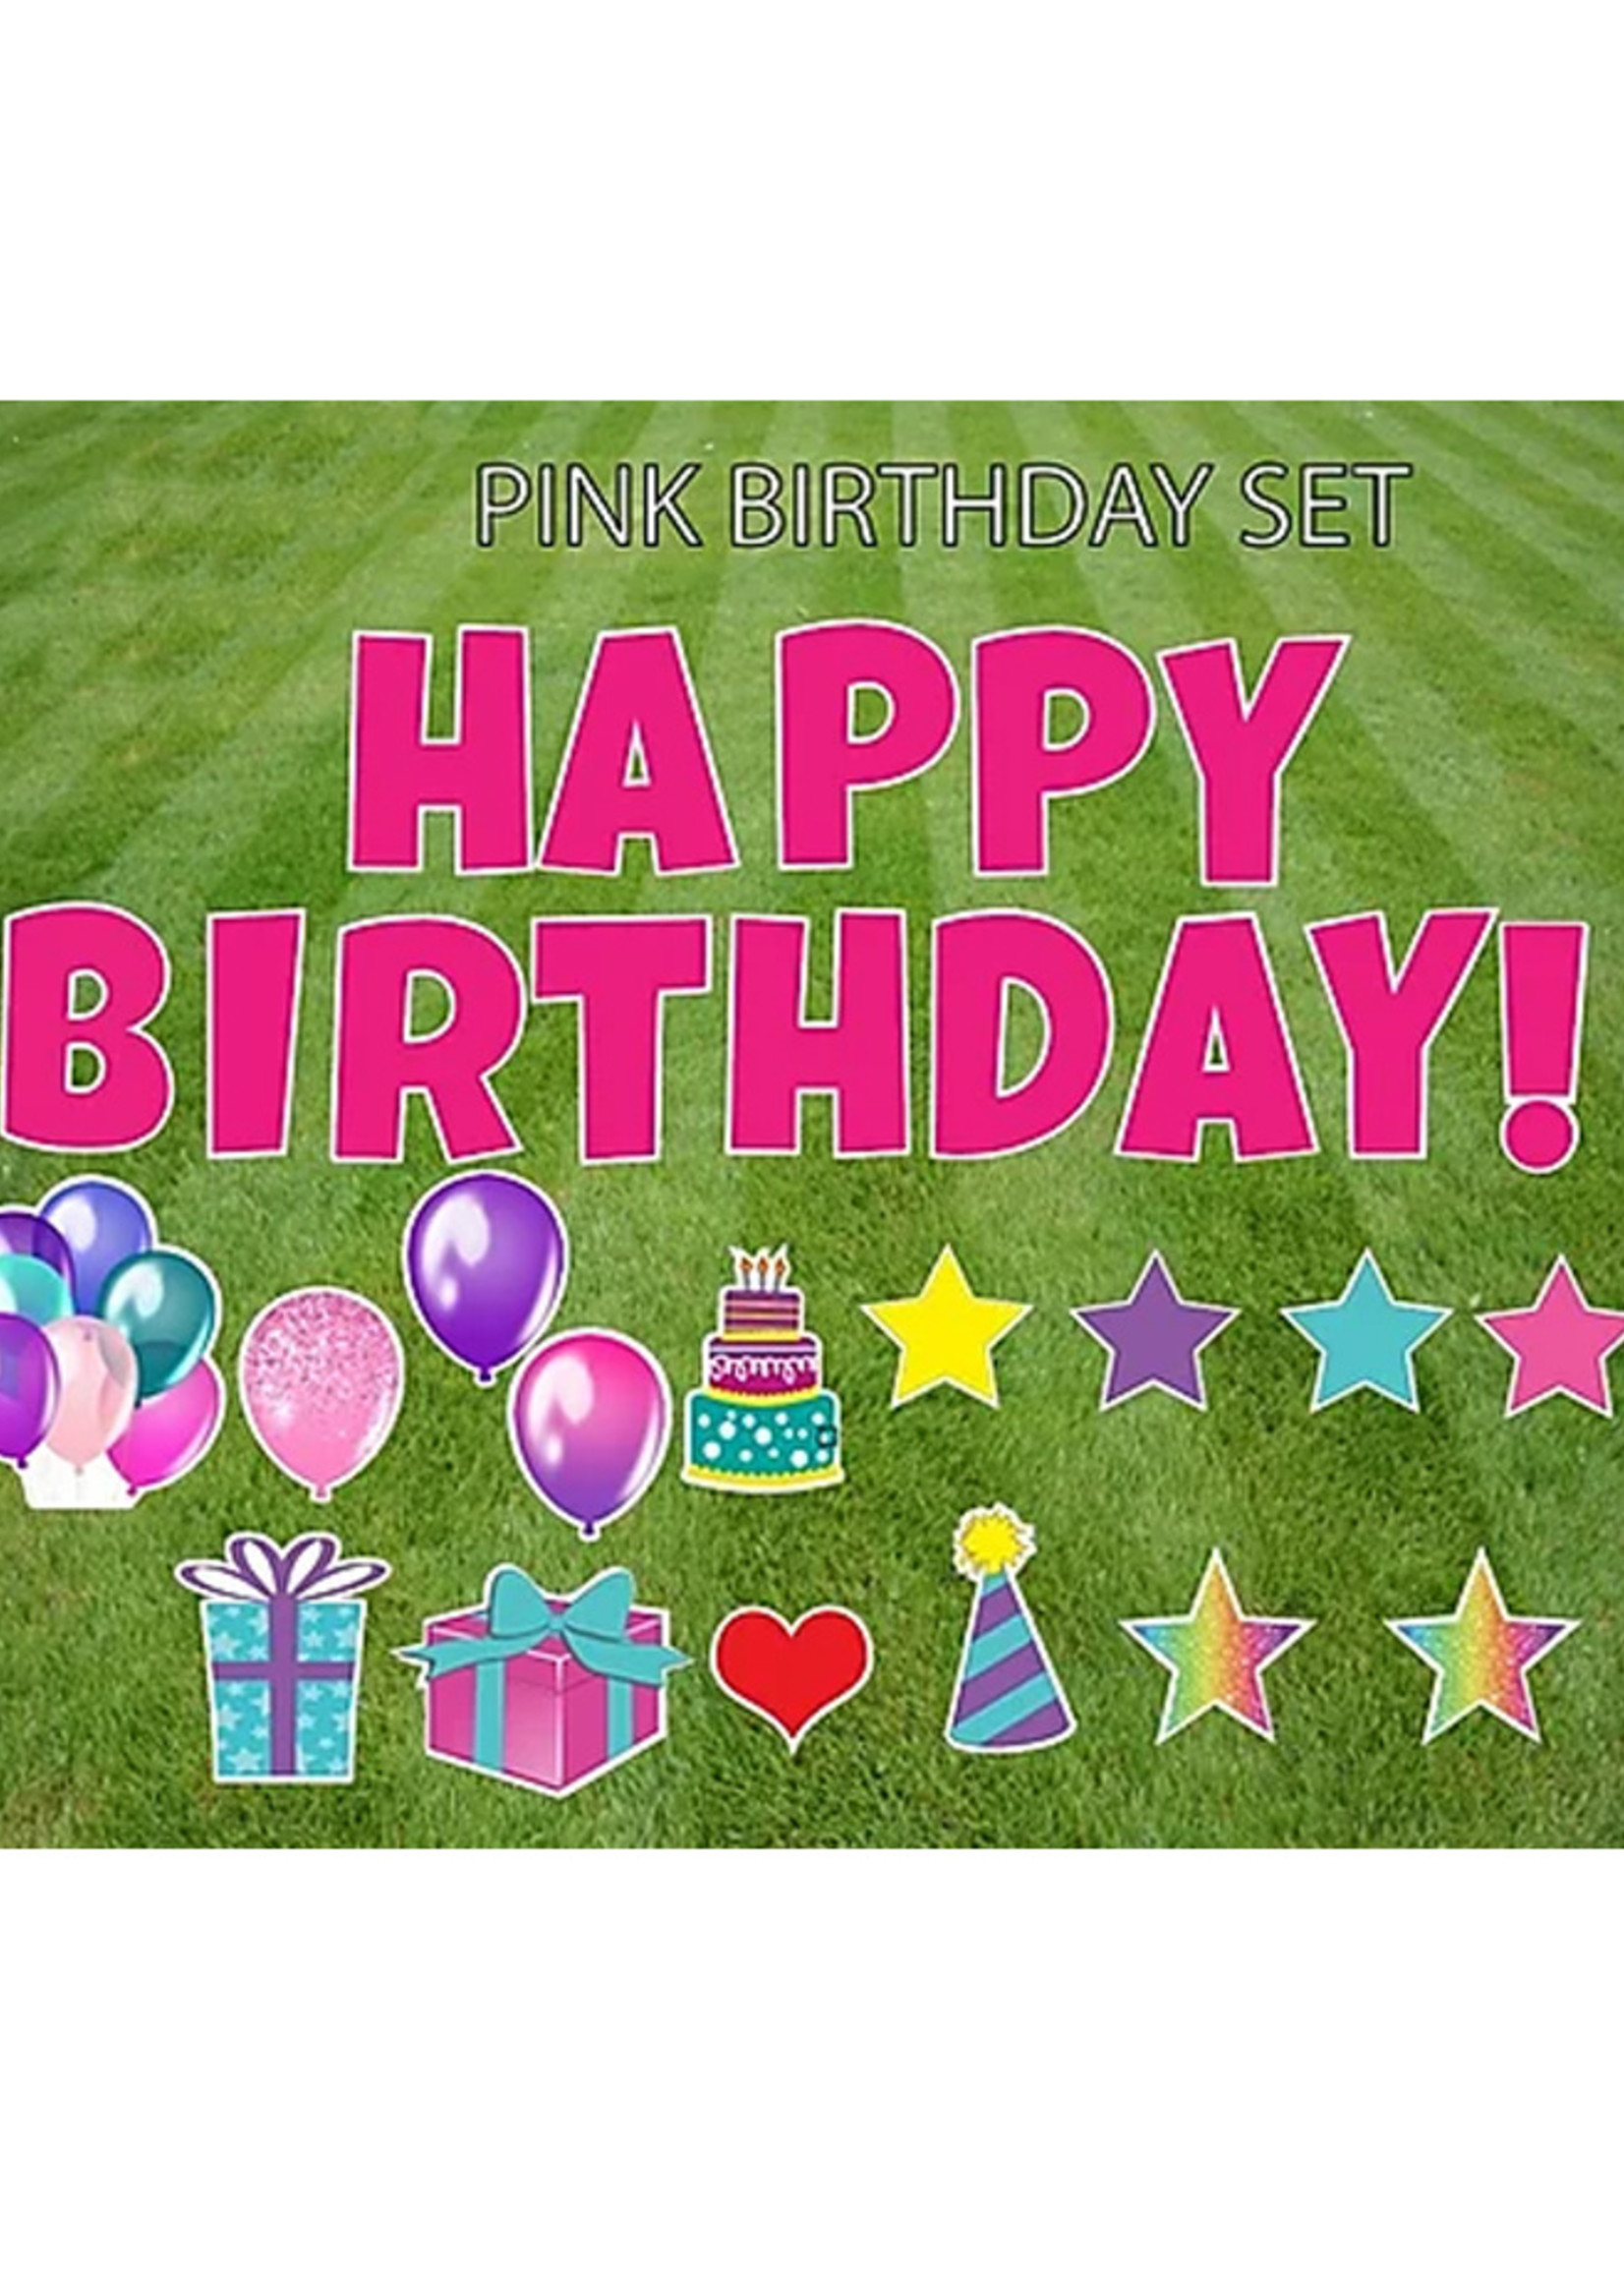 """Rental Yard Card """"Happy Birthday - Pink"""" - Store Pick Up ONLY"""